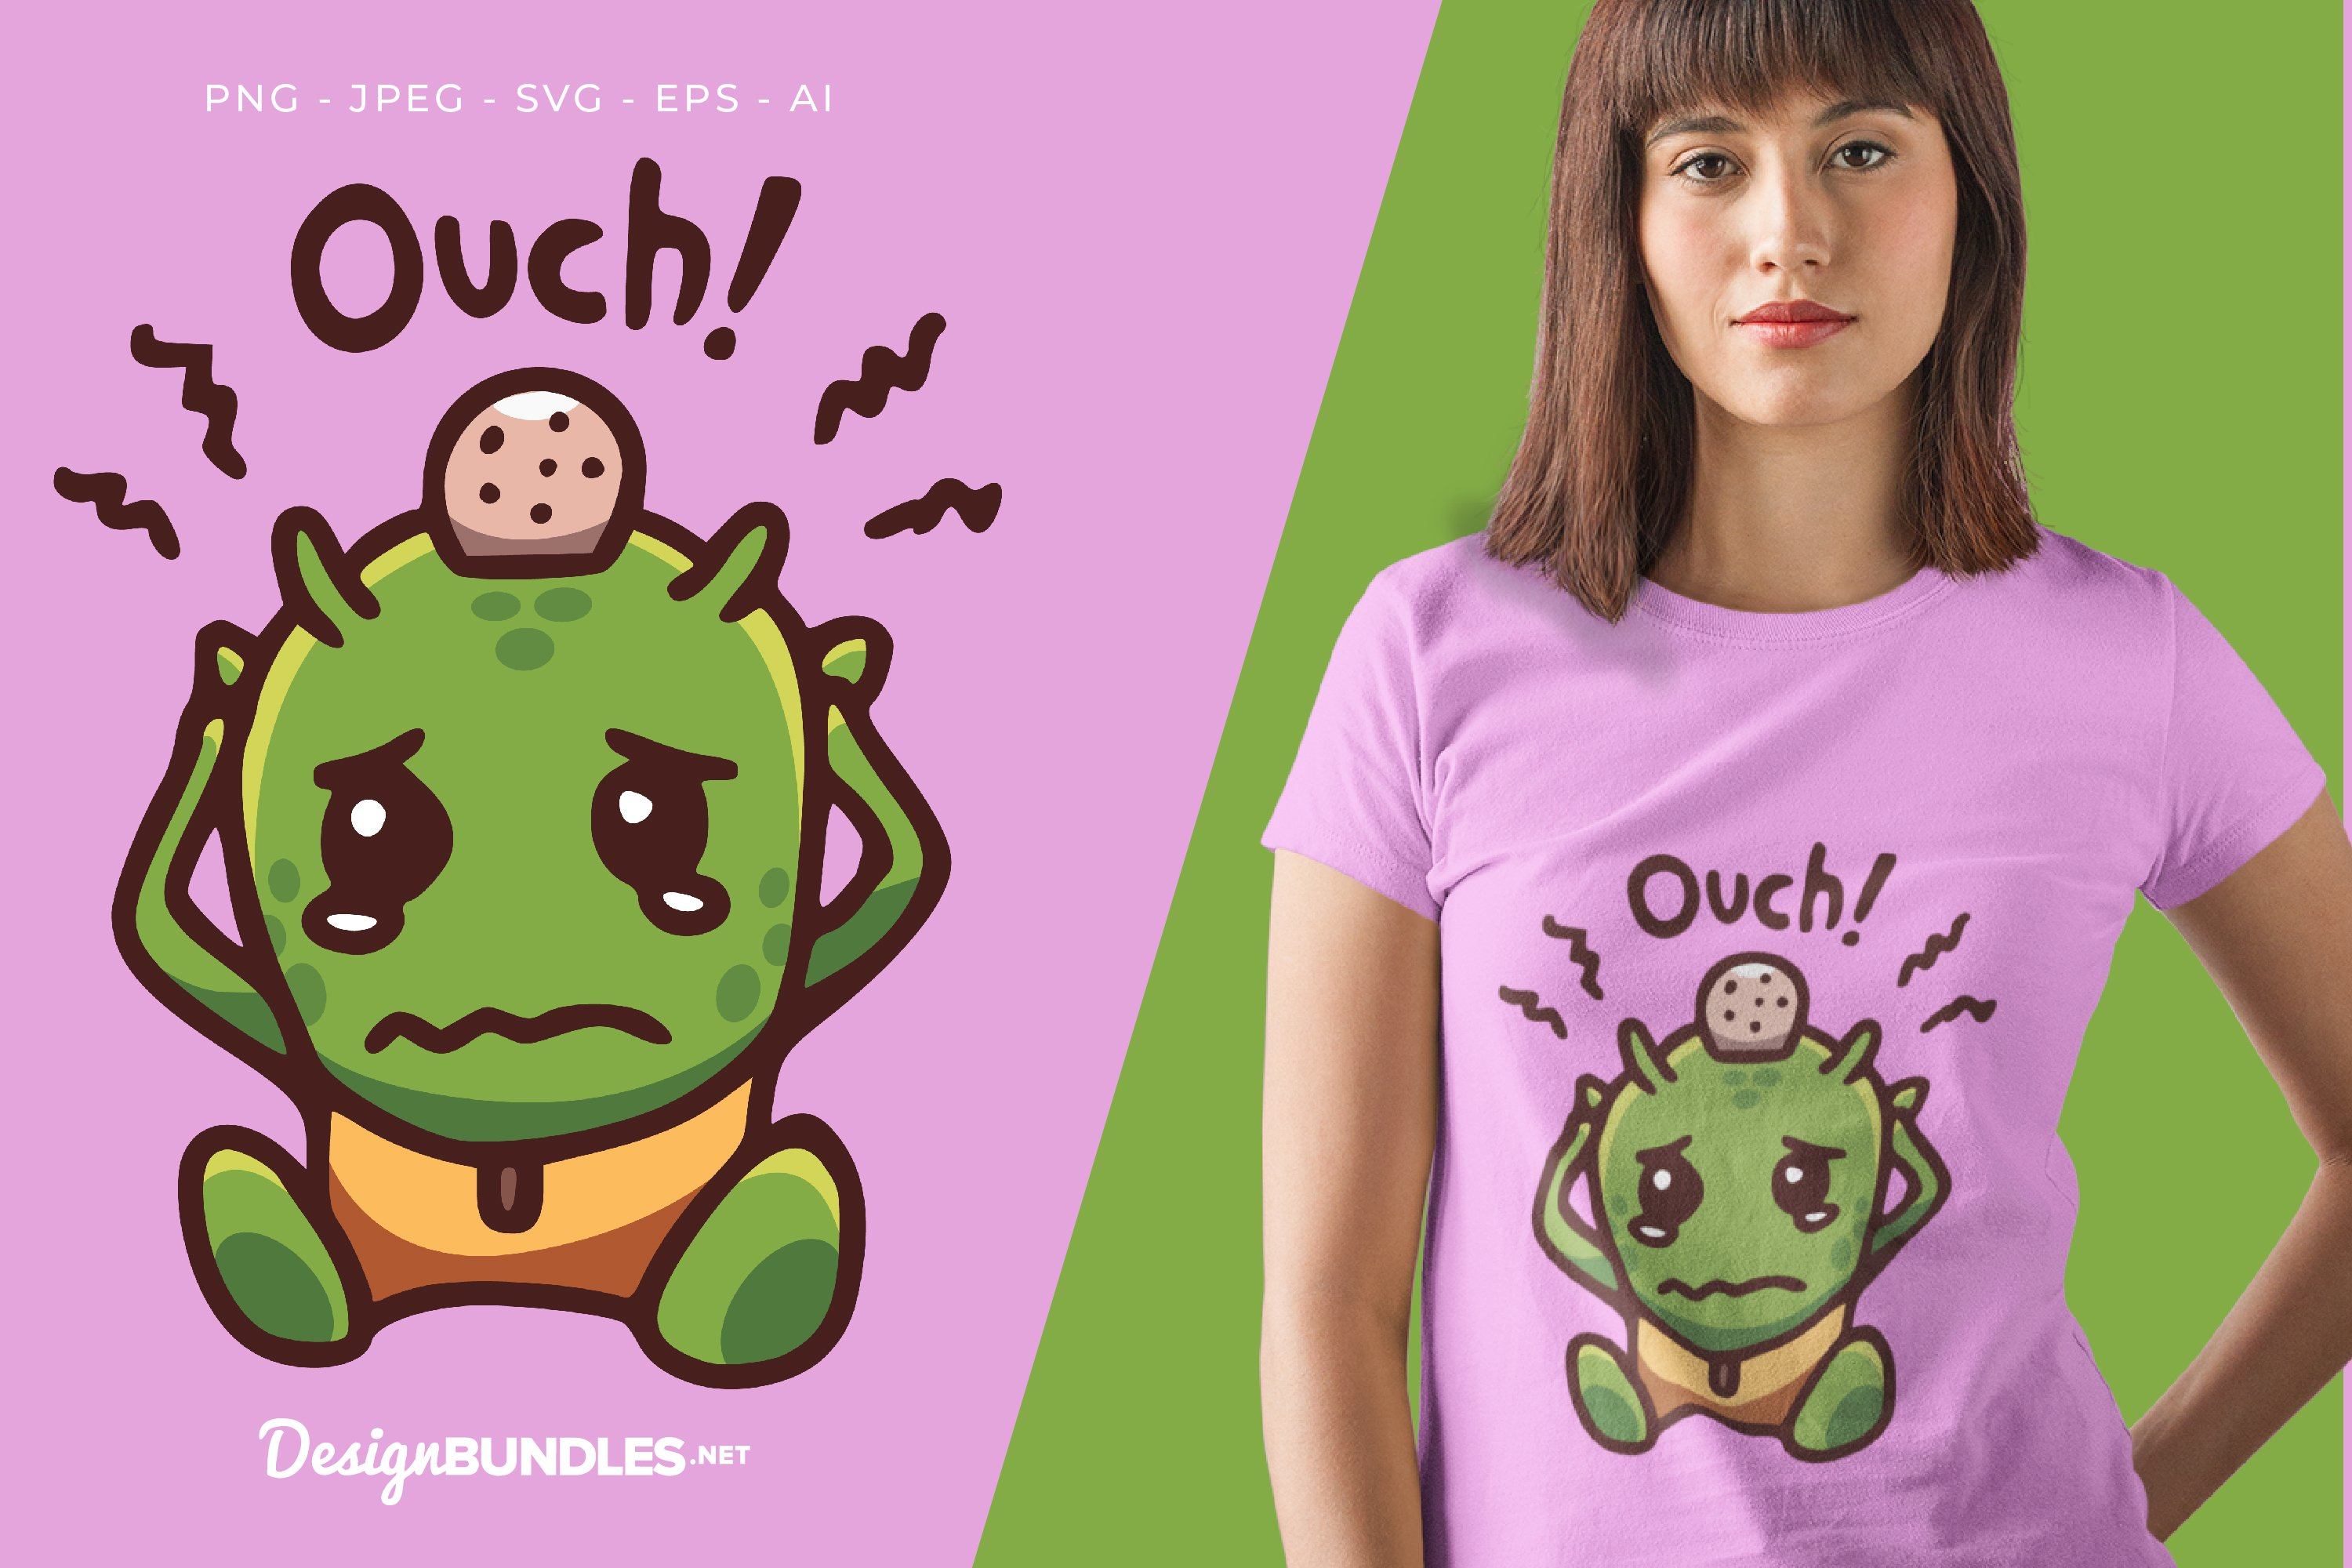 Bumped Head Green Alien Vector Illustration For T-Shirt example image 1